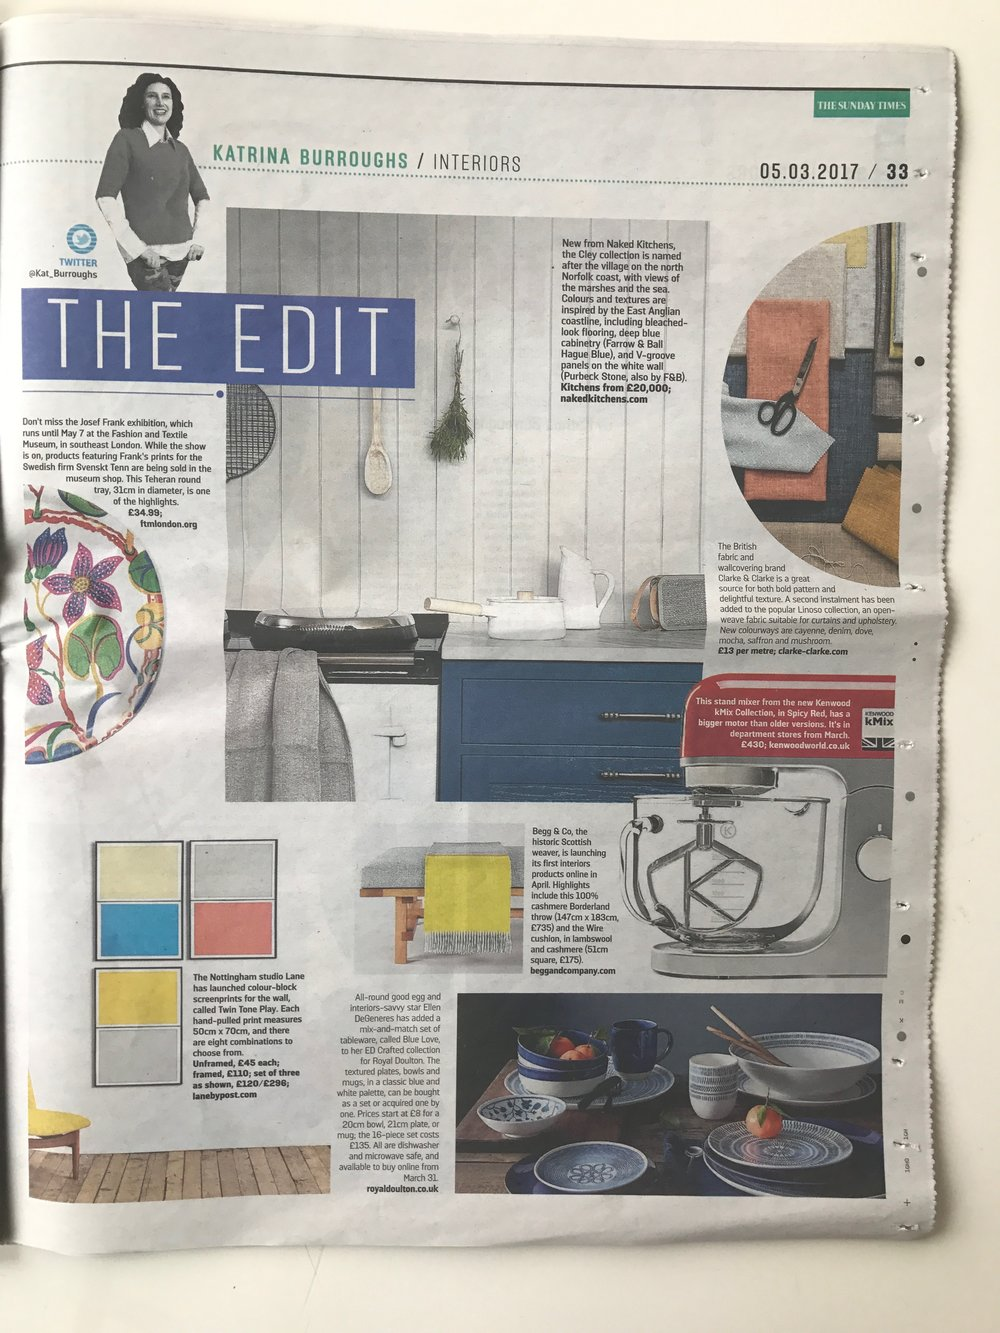 Sunday Times Home, 5th March 2017, 'Twin Tone Play' Hand Pulled Screen Prints